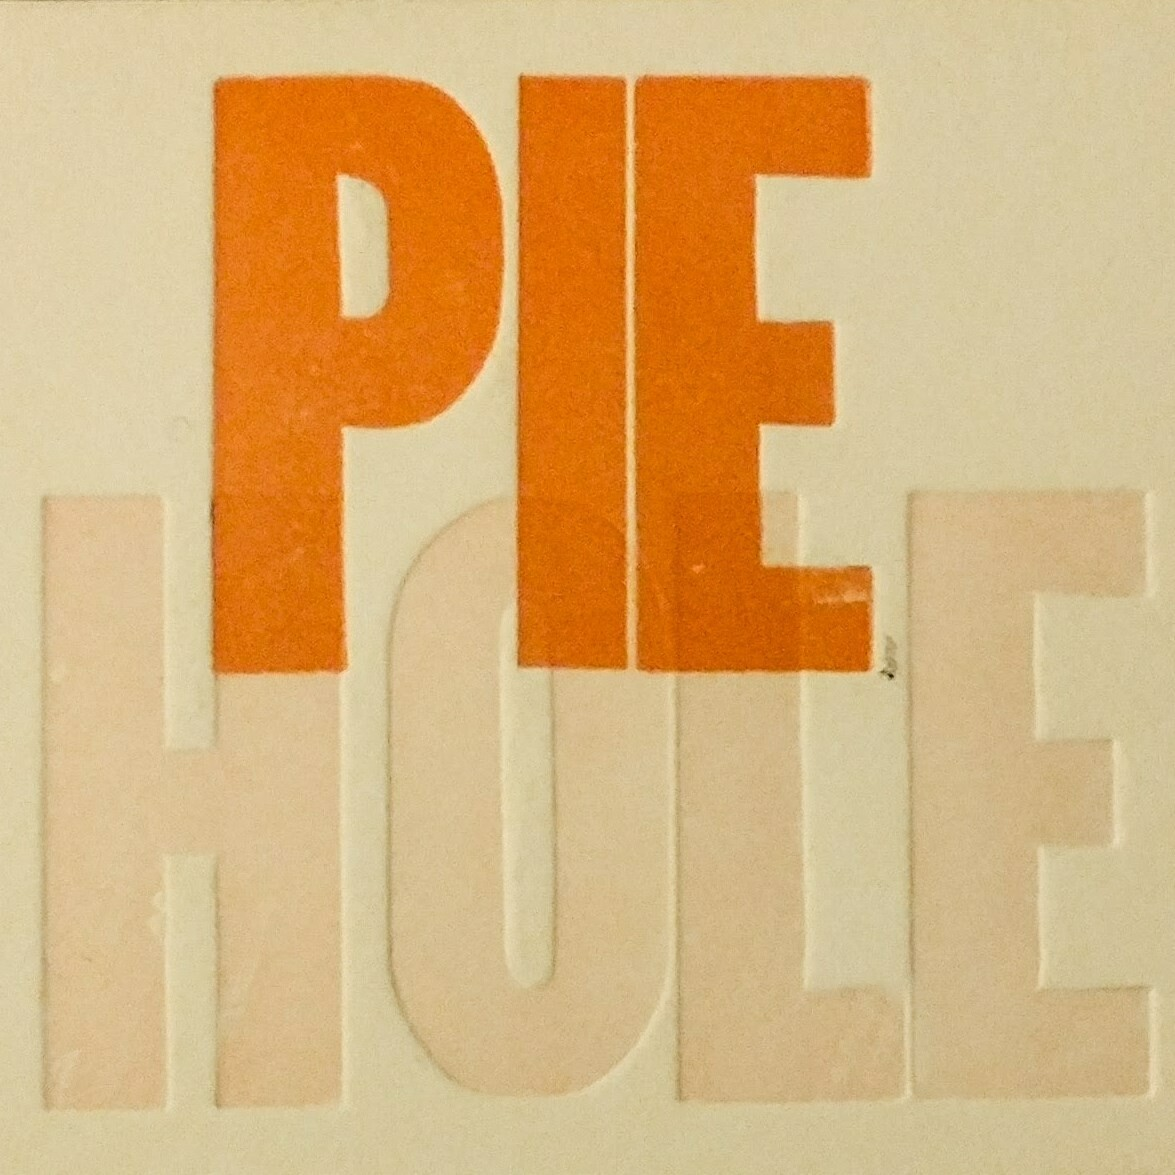 orange and tan text PIE HOLE over tan background.